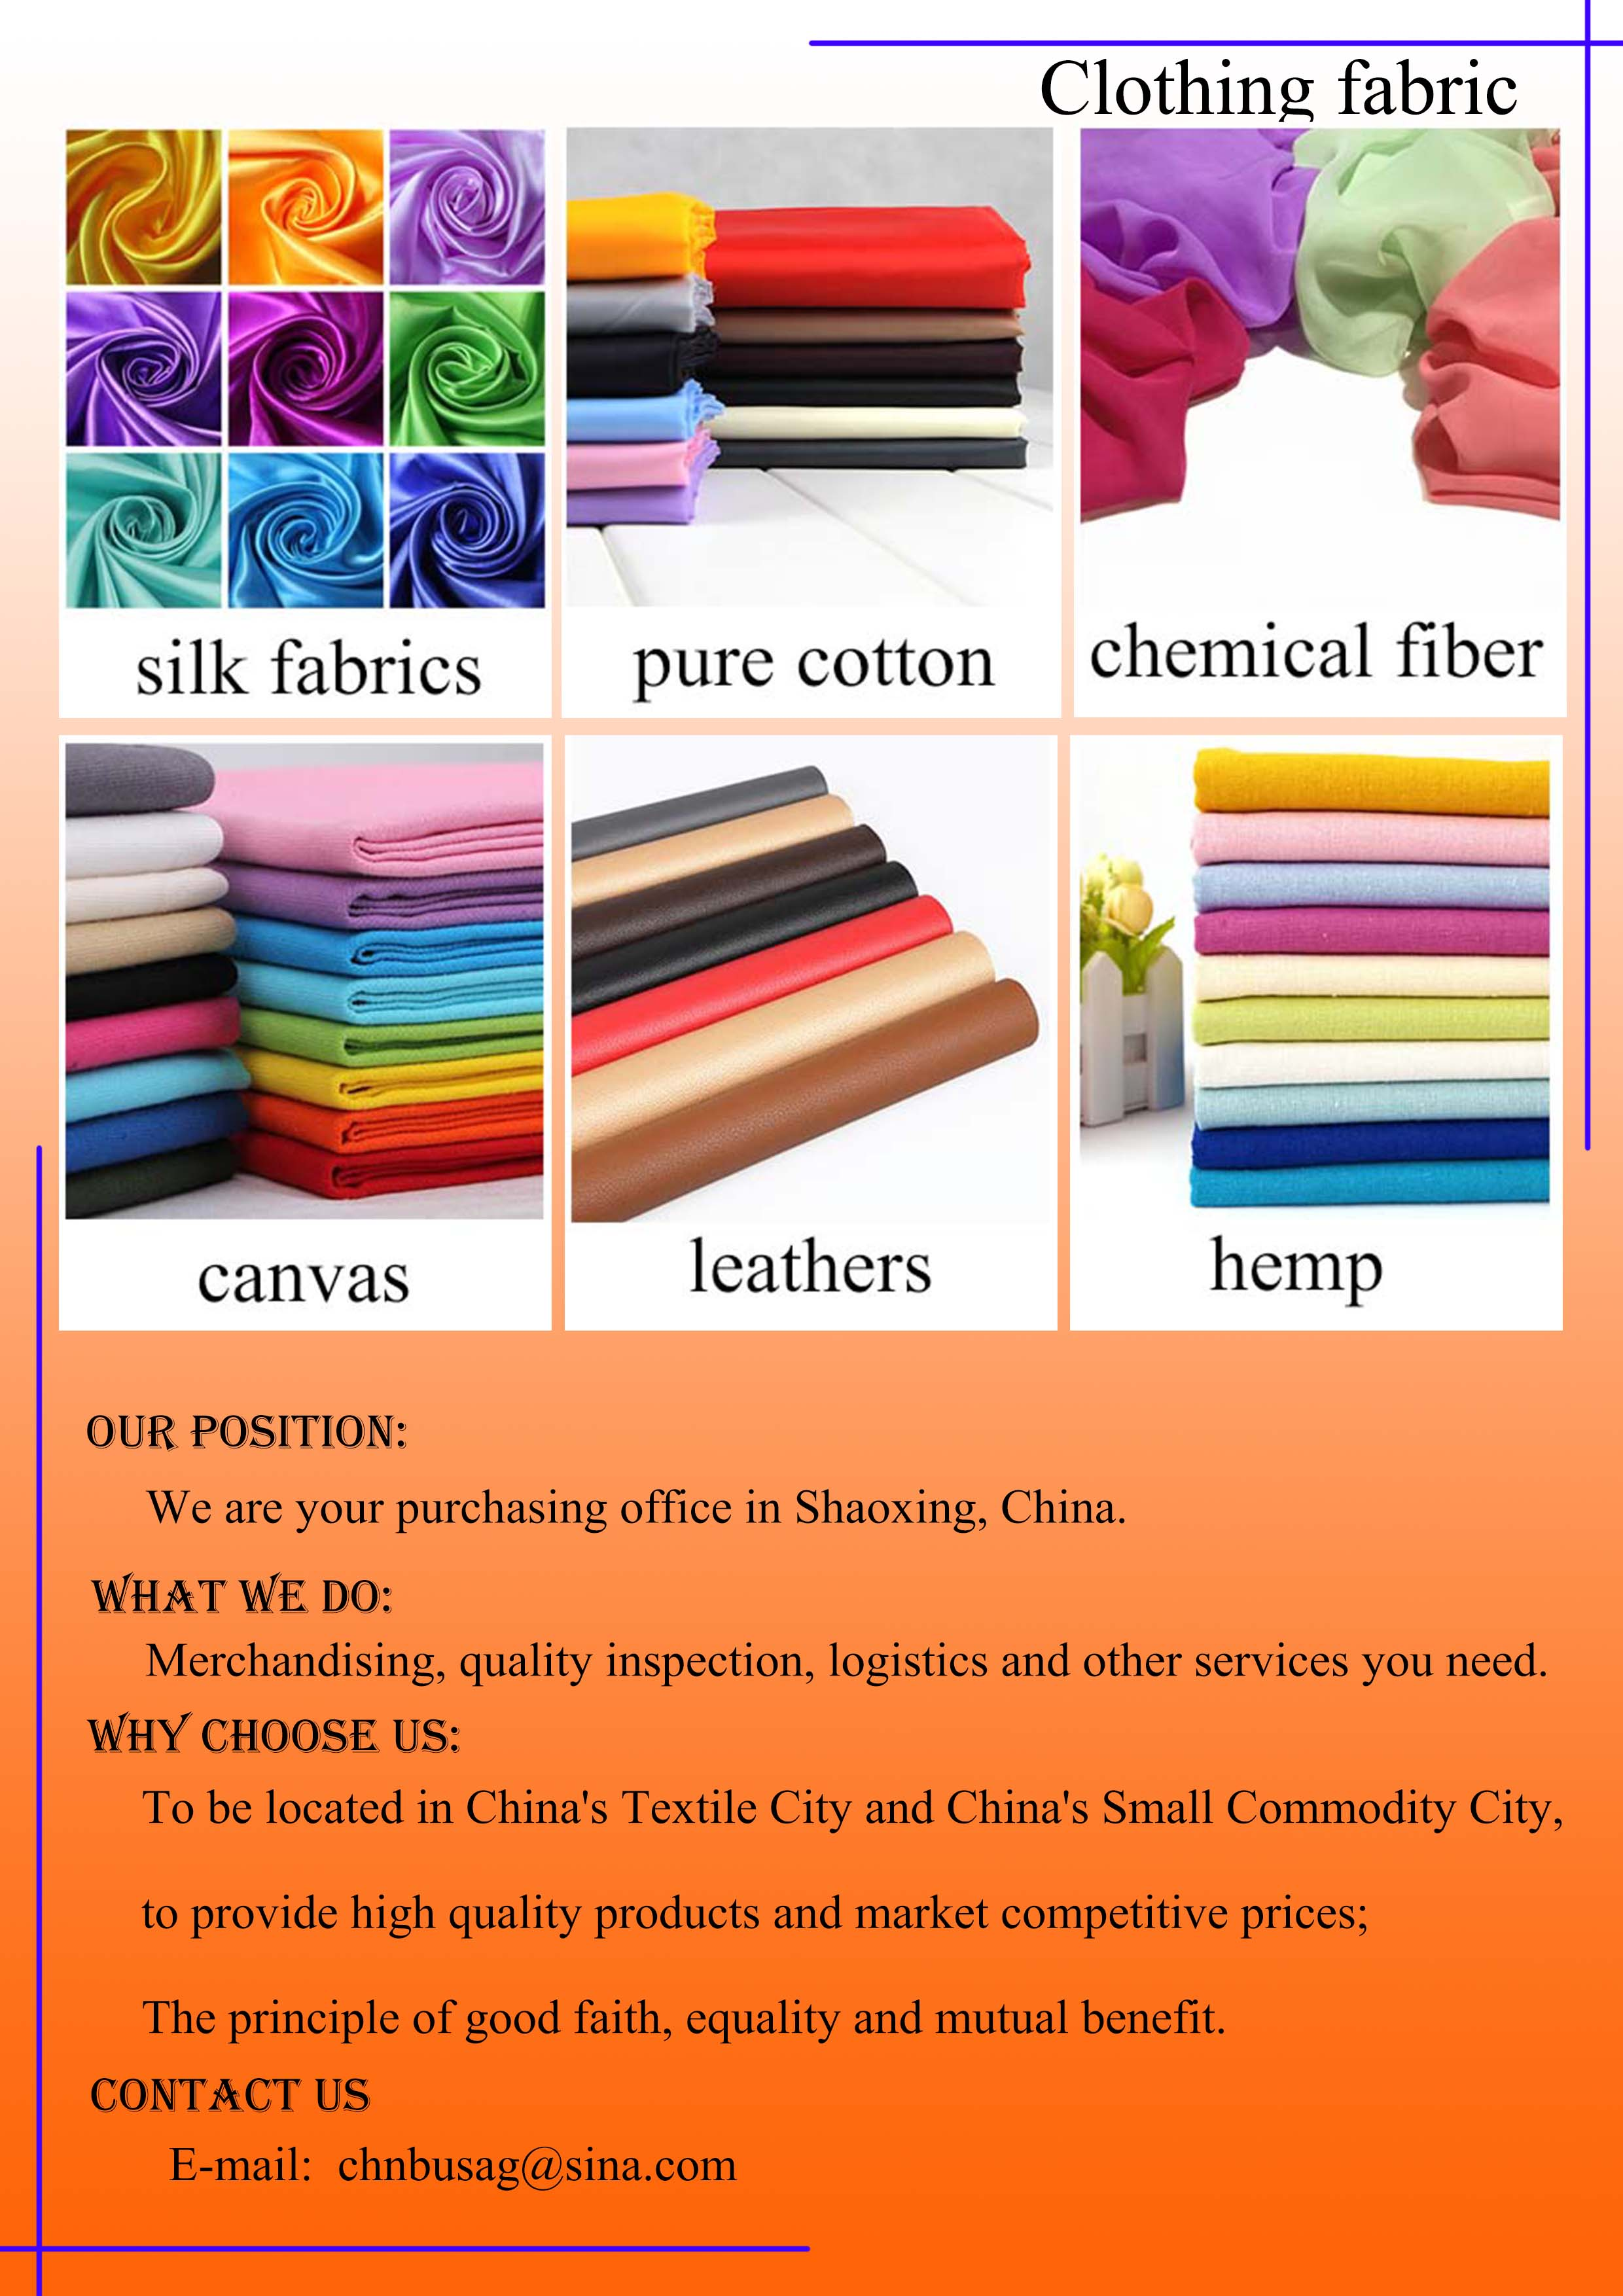 Clothing fabric,Daliy necessities,Small articles of daily use,Hardware tools